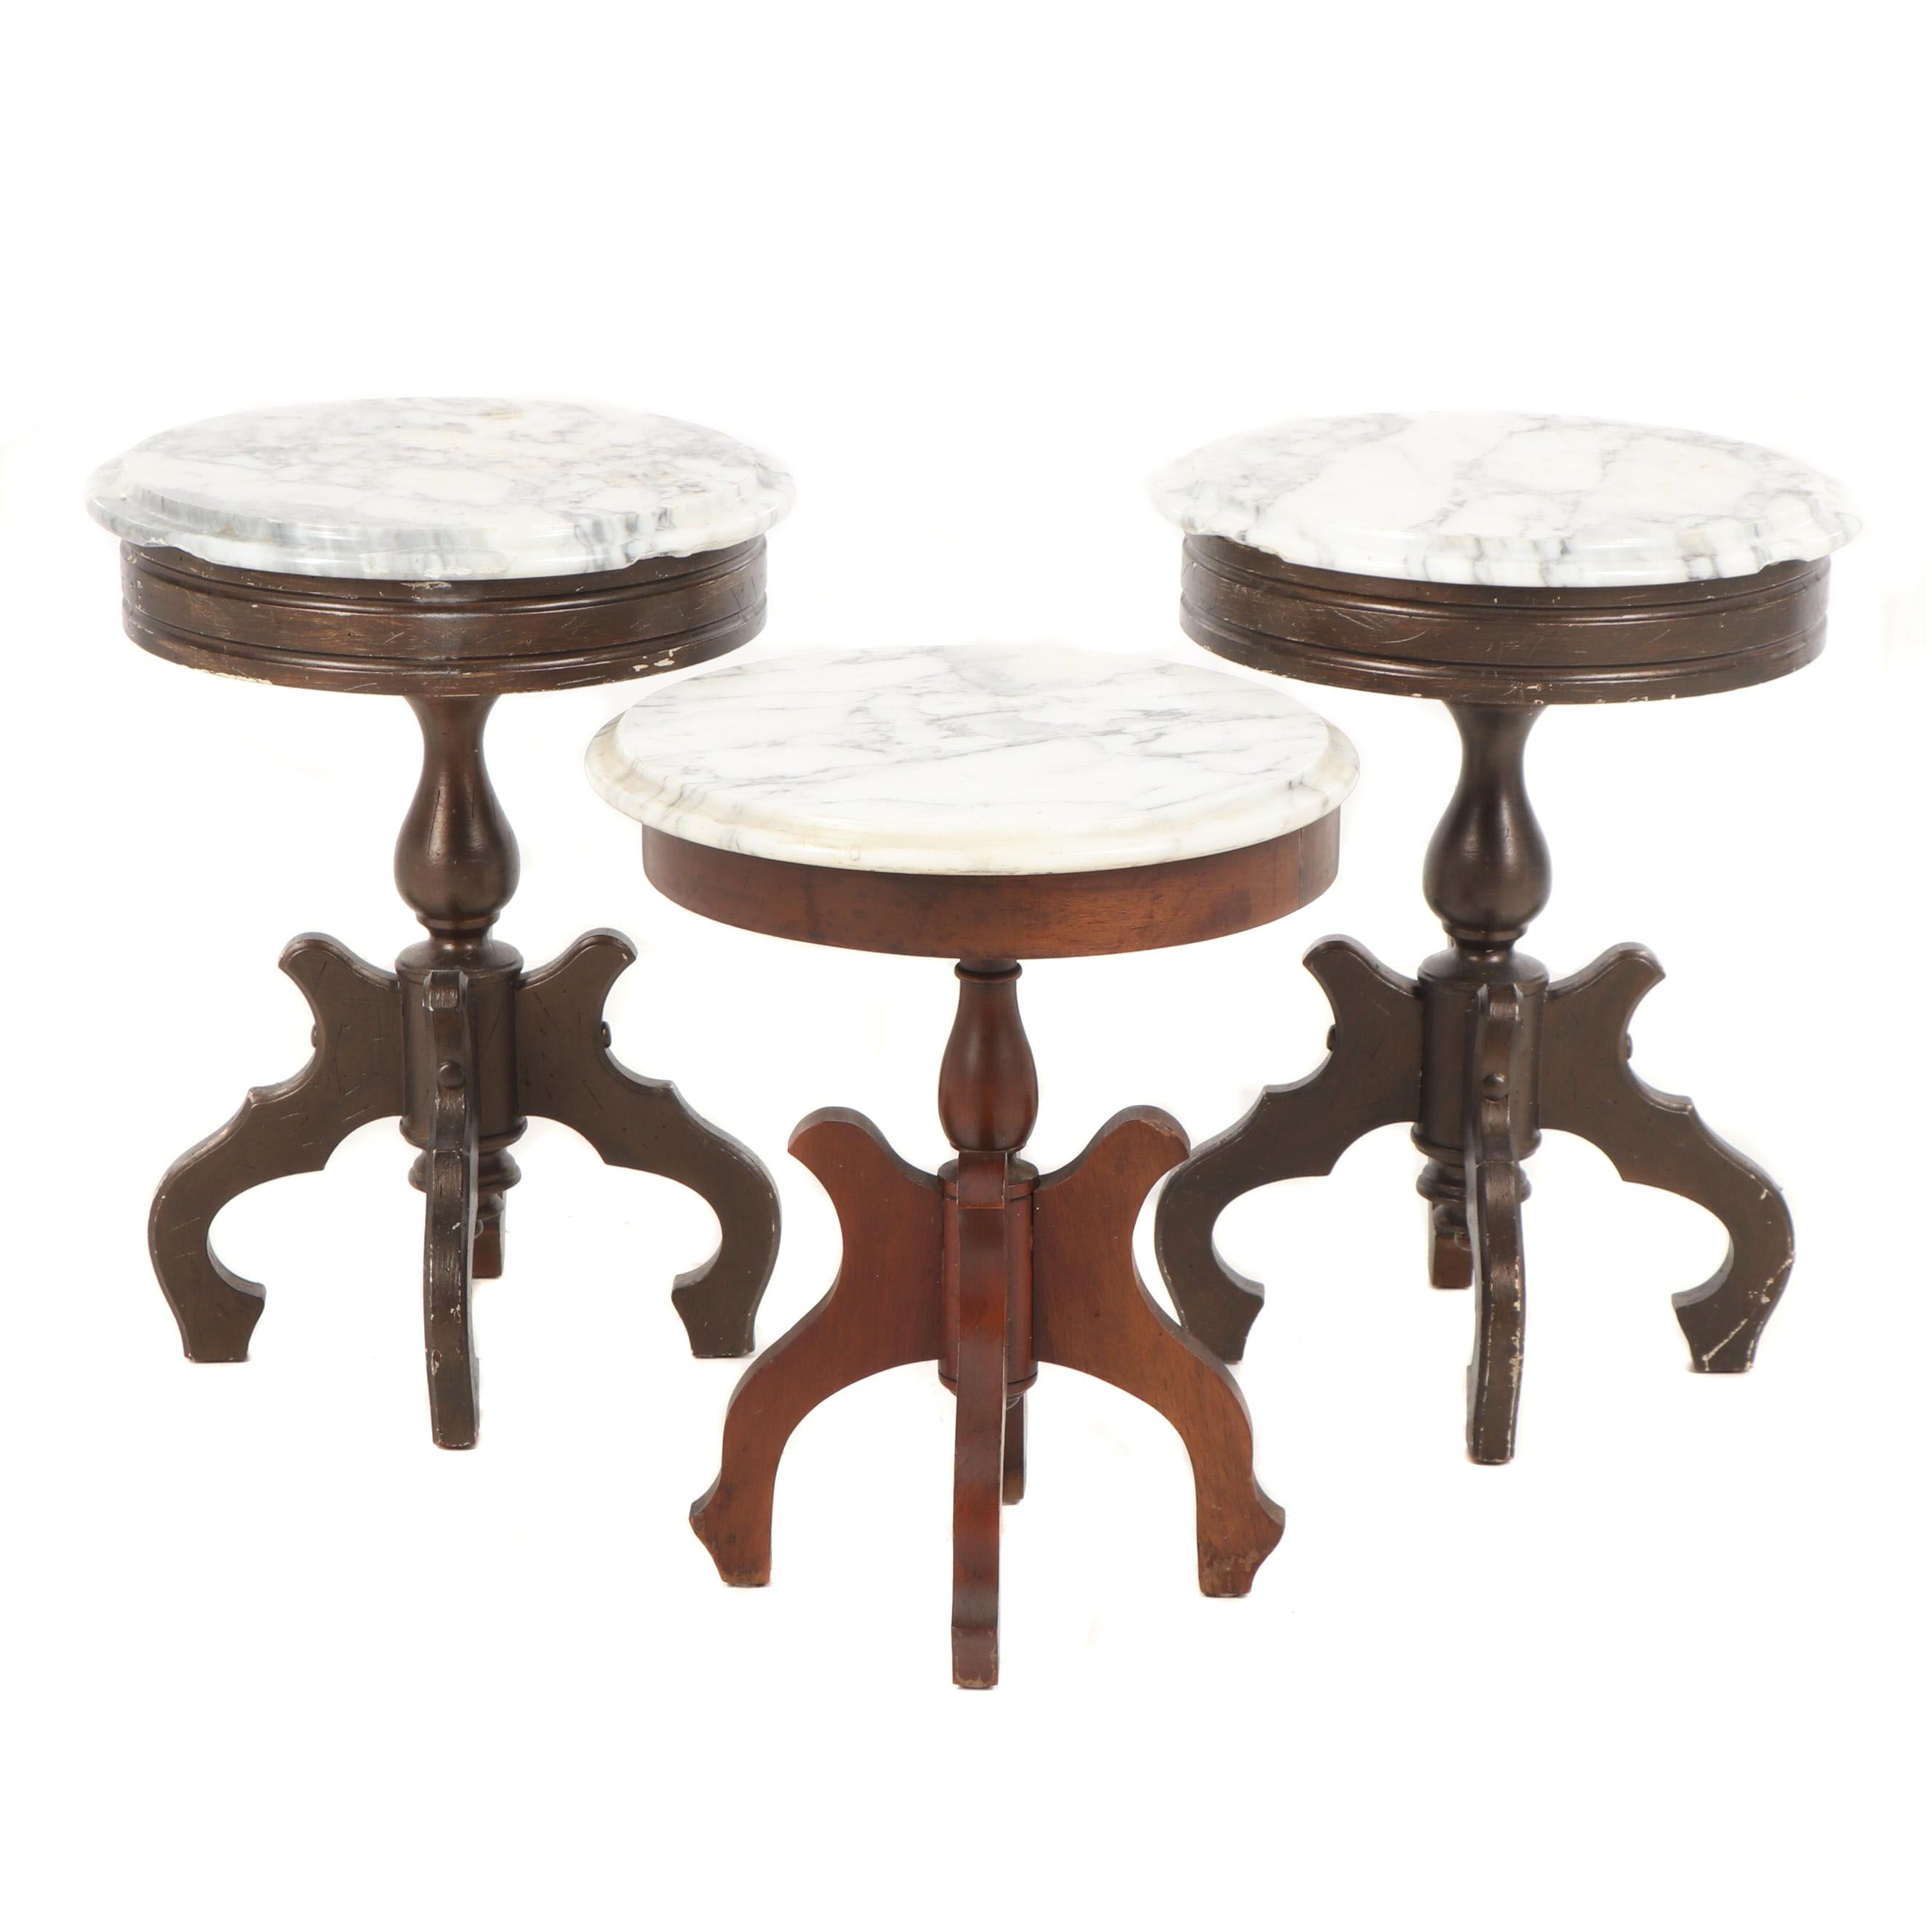 Victorian Style Wood and Marble Side Tables, Early 20th Century